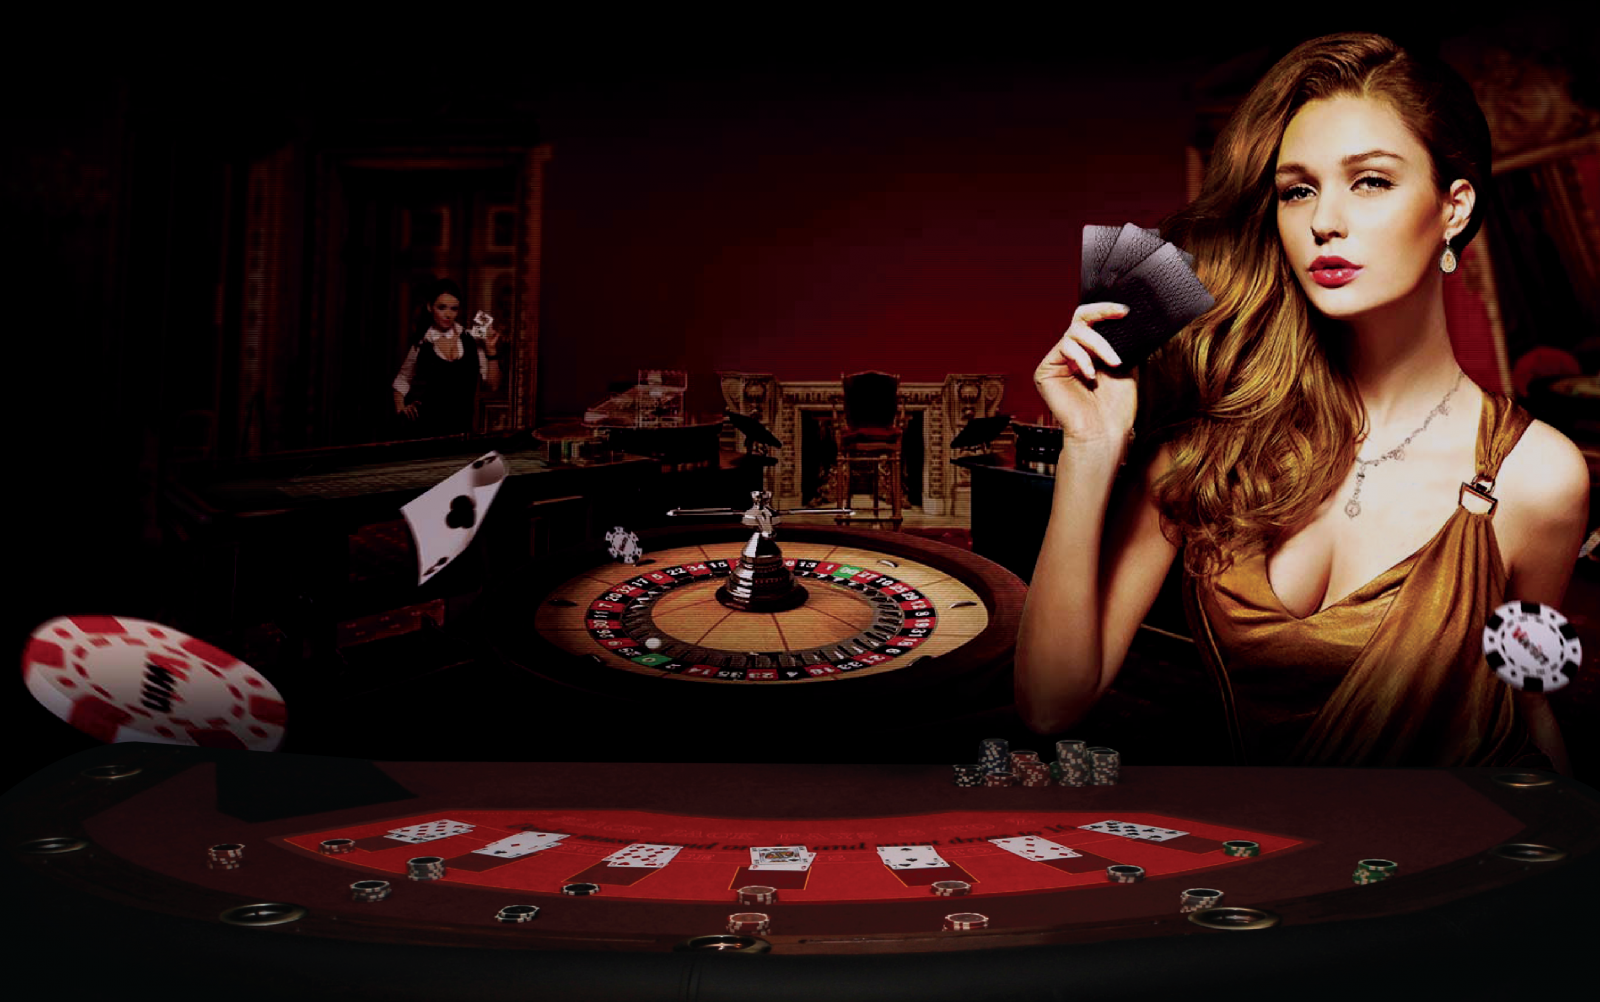 Agen Bola Terpercaya and also the advantages of online gambling game titles